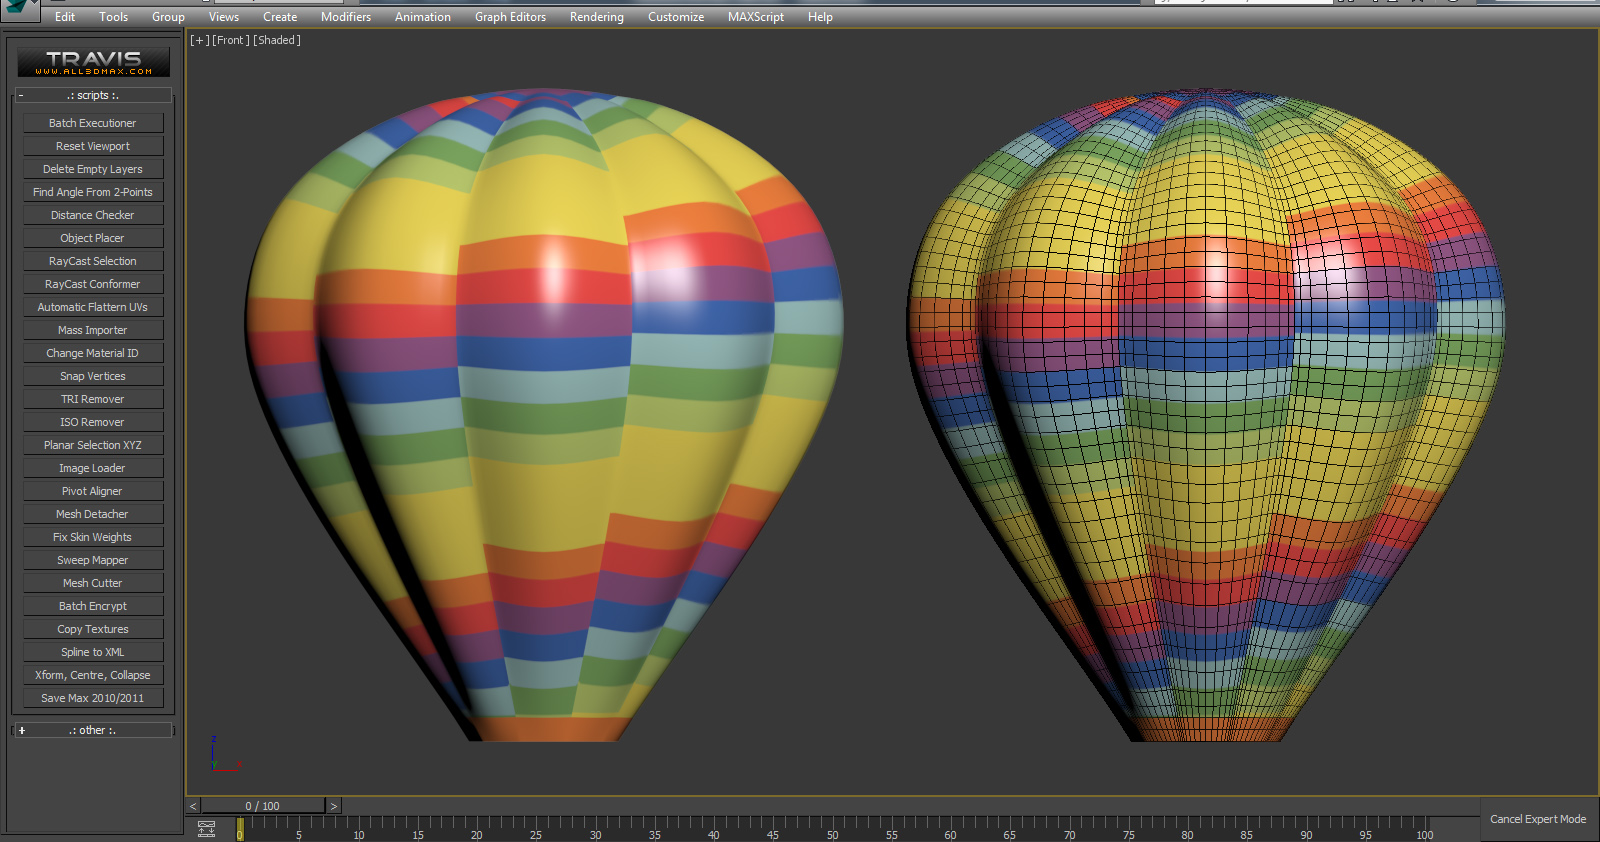 Help with Hot Air Balloon - Autodesk Community